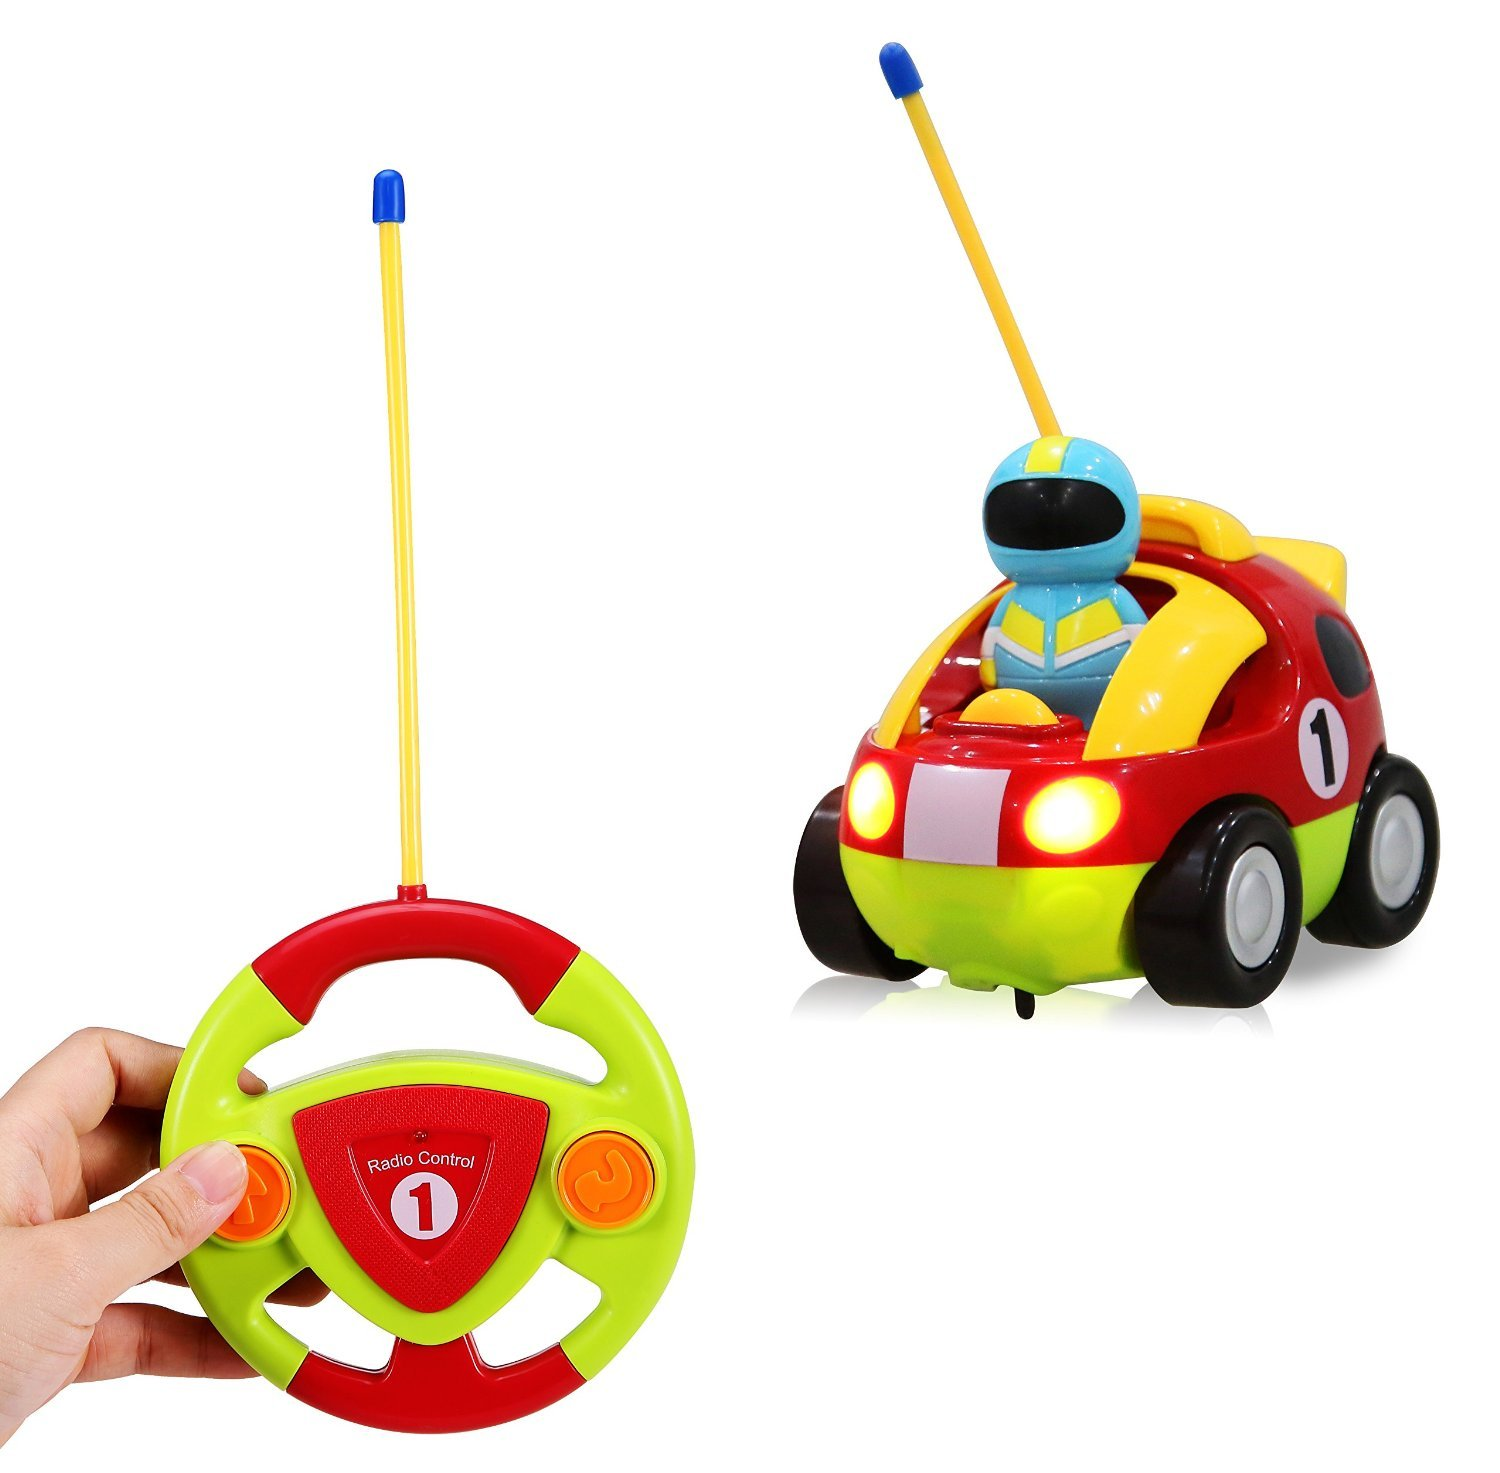 Amazon Cartoon R C Race Car Radio Control Toy for Toddlers by